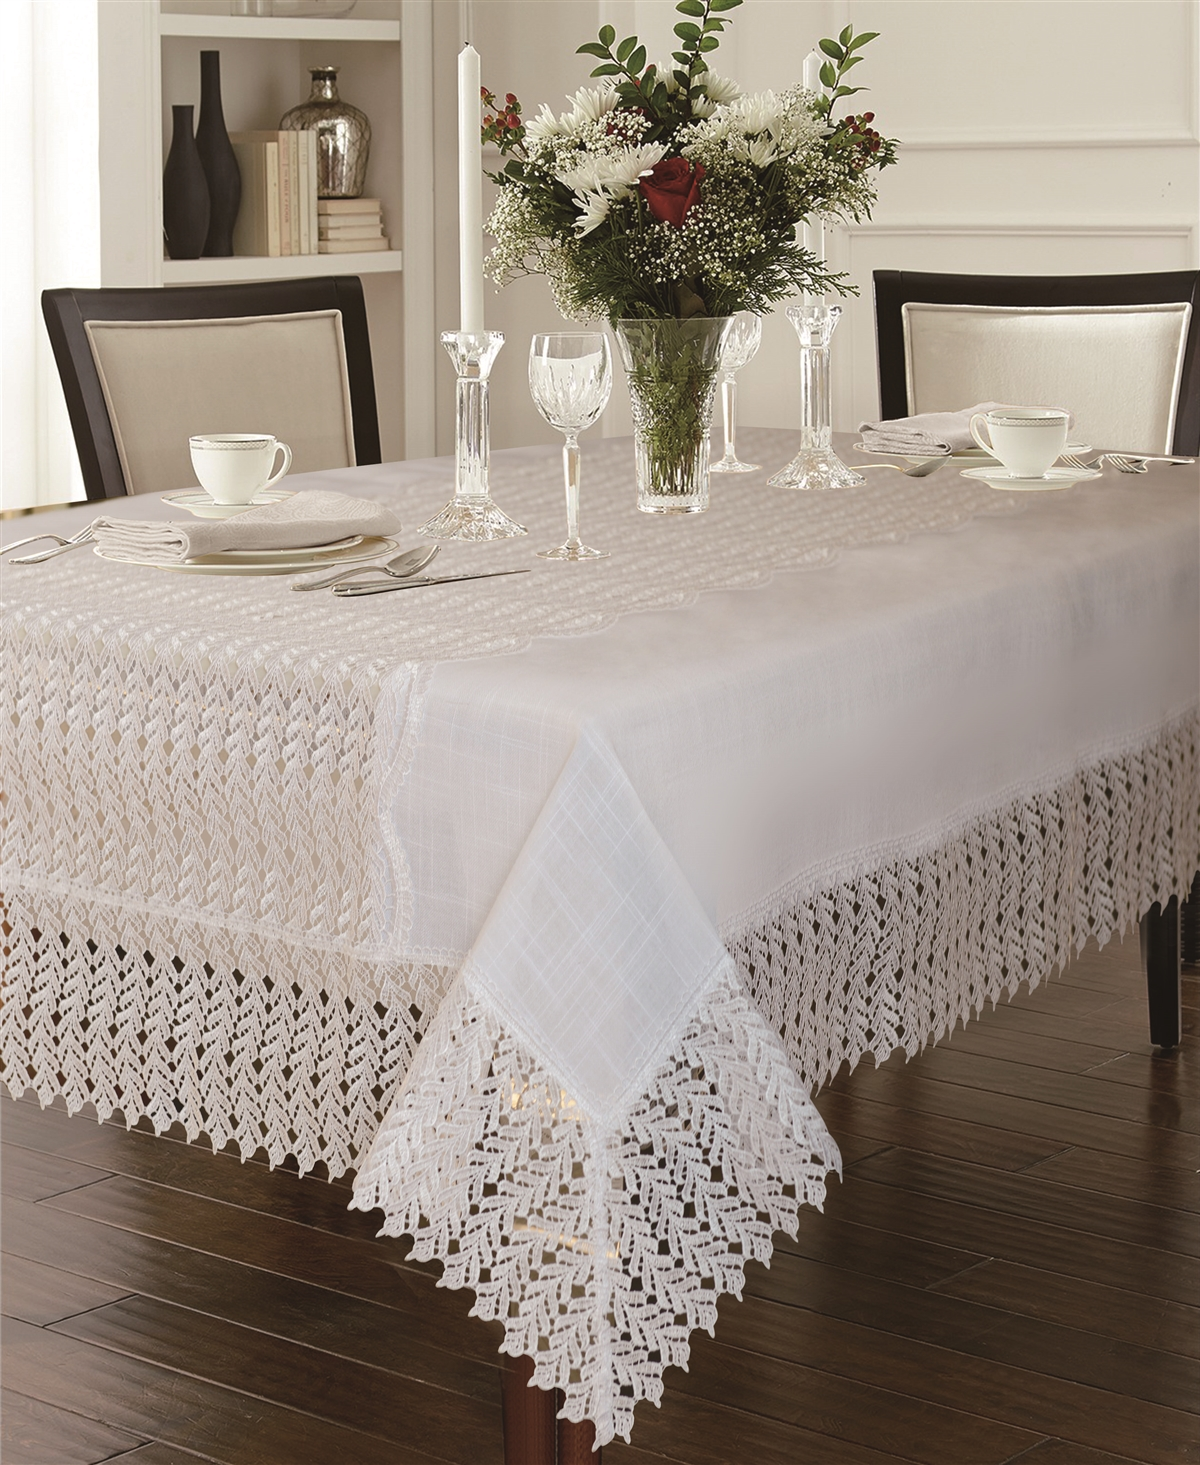 Lisbon Embroidered Tablecloth